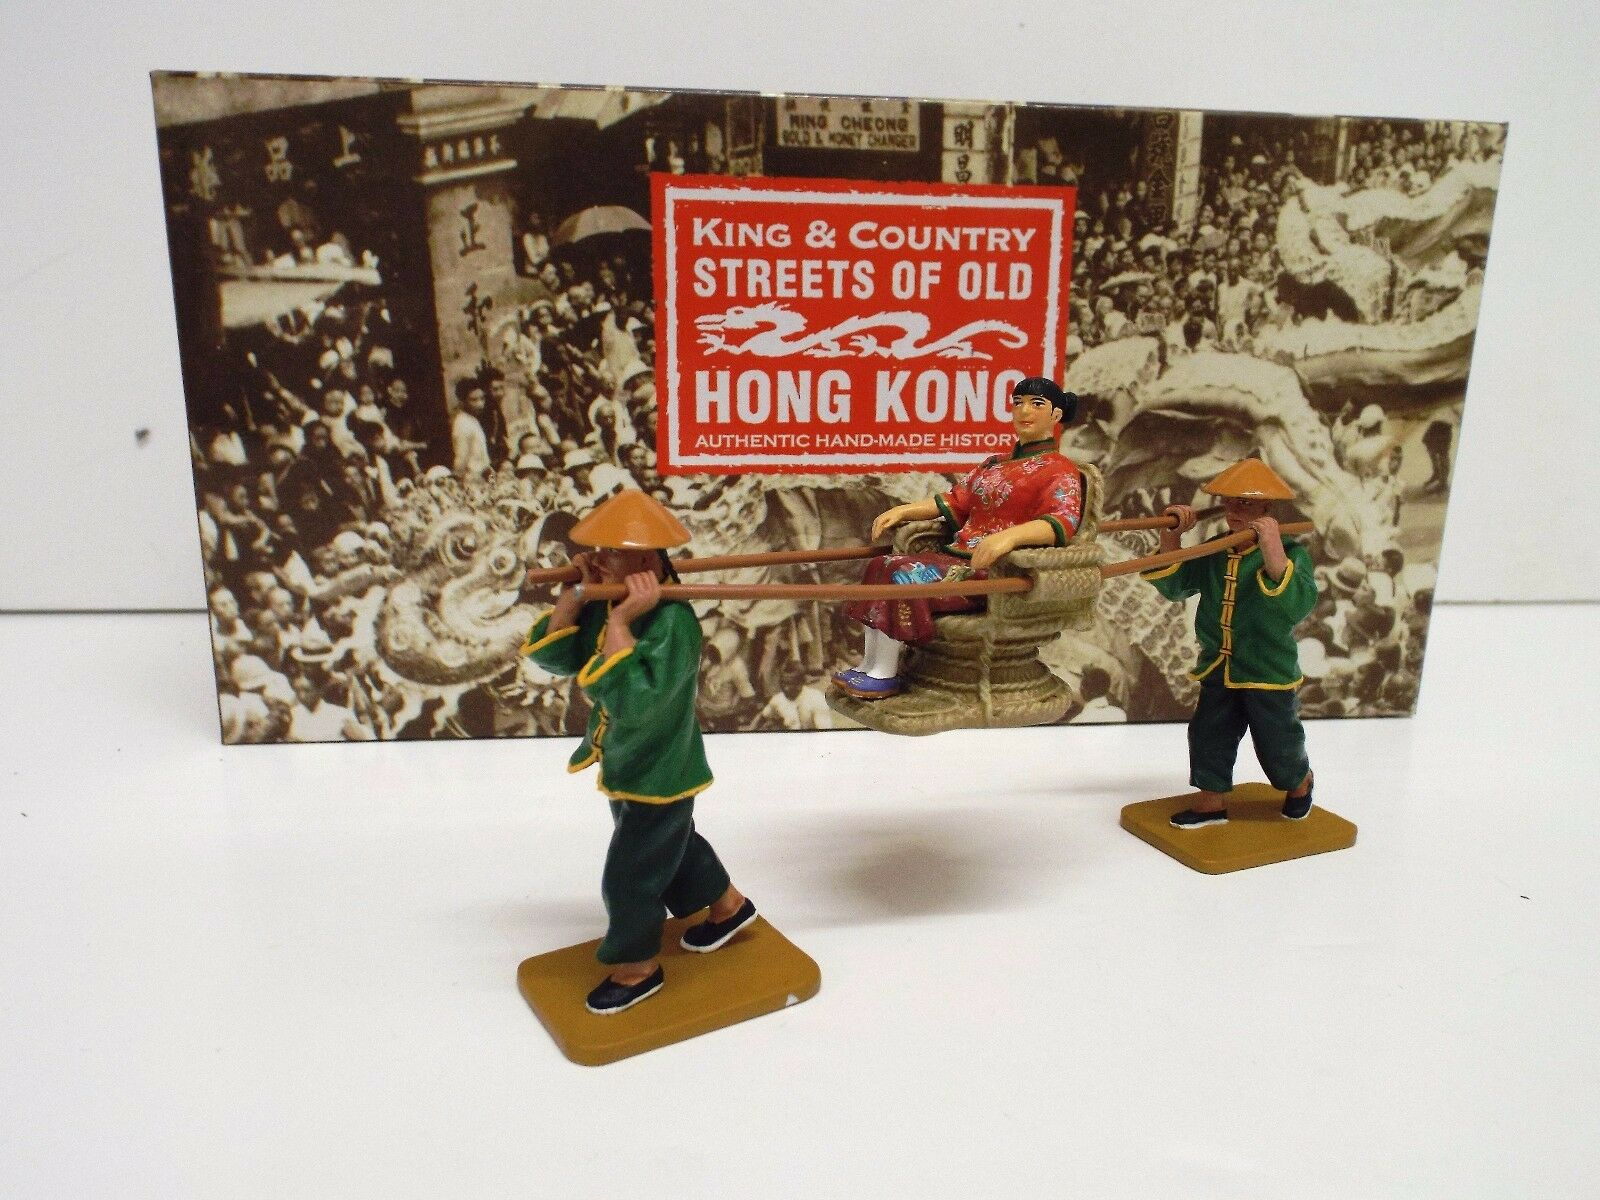 KING AND COUNTRY HK173 HK173 (S) M S.O.O.H.K SEDAN CHAIR SET RETIRED BOXED (BS2111)